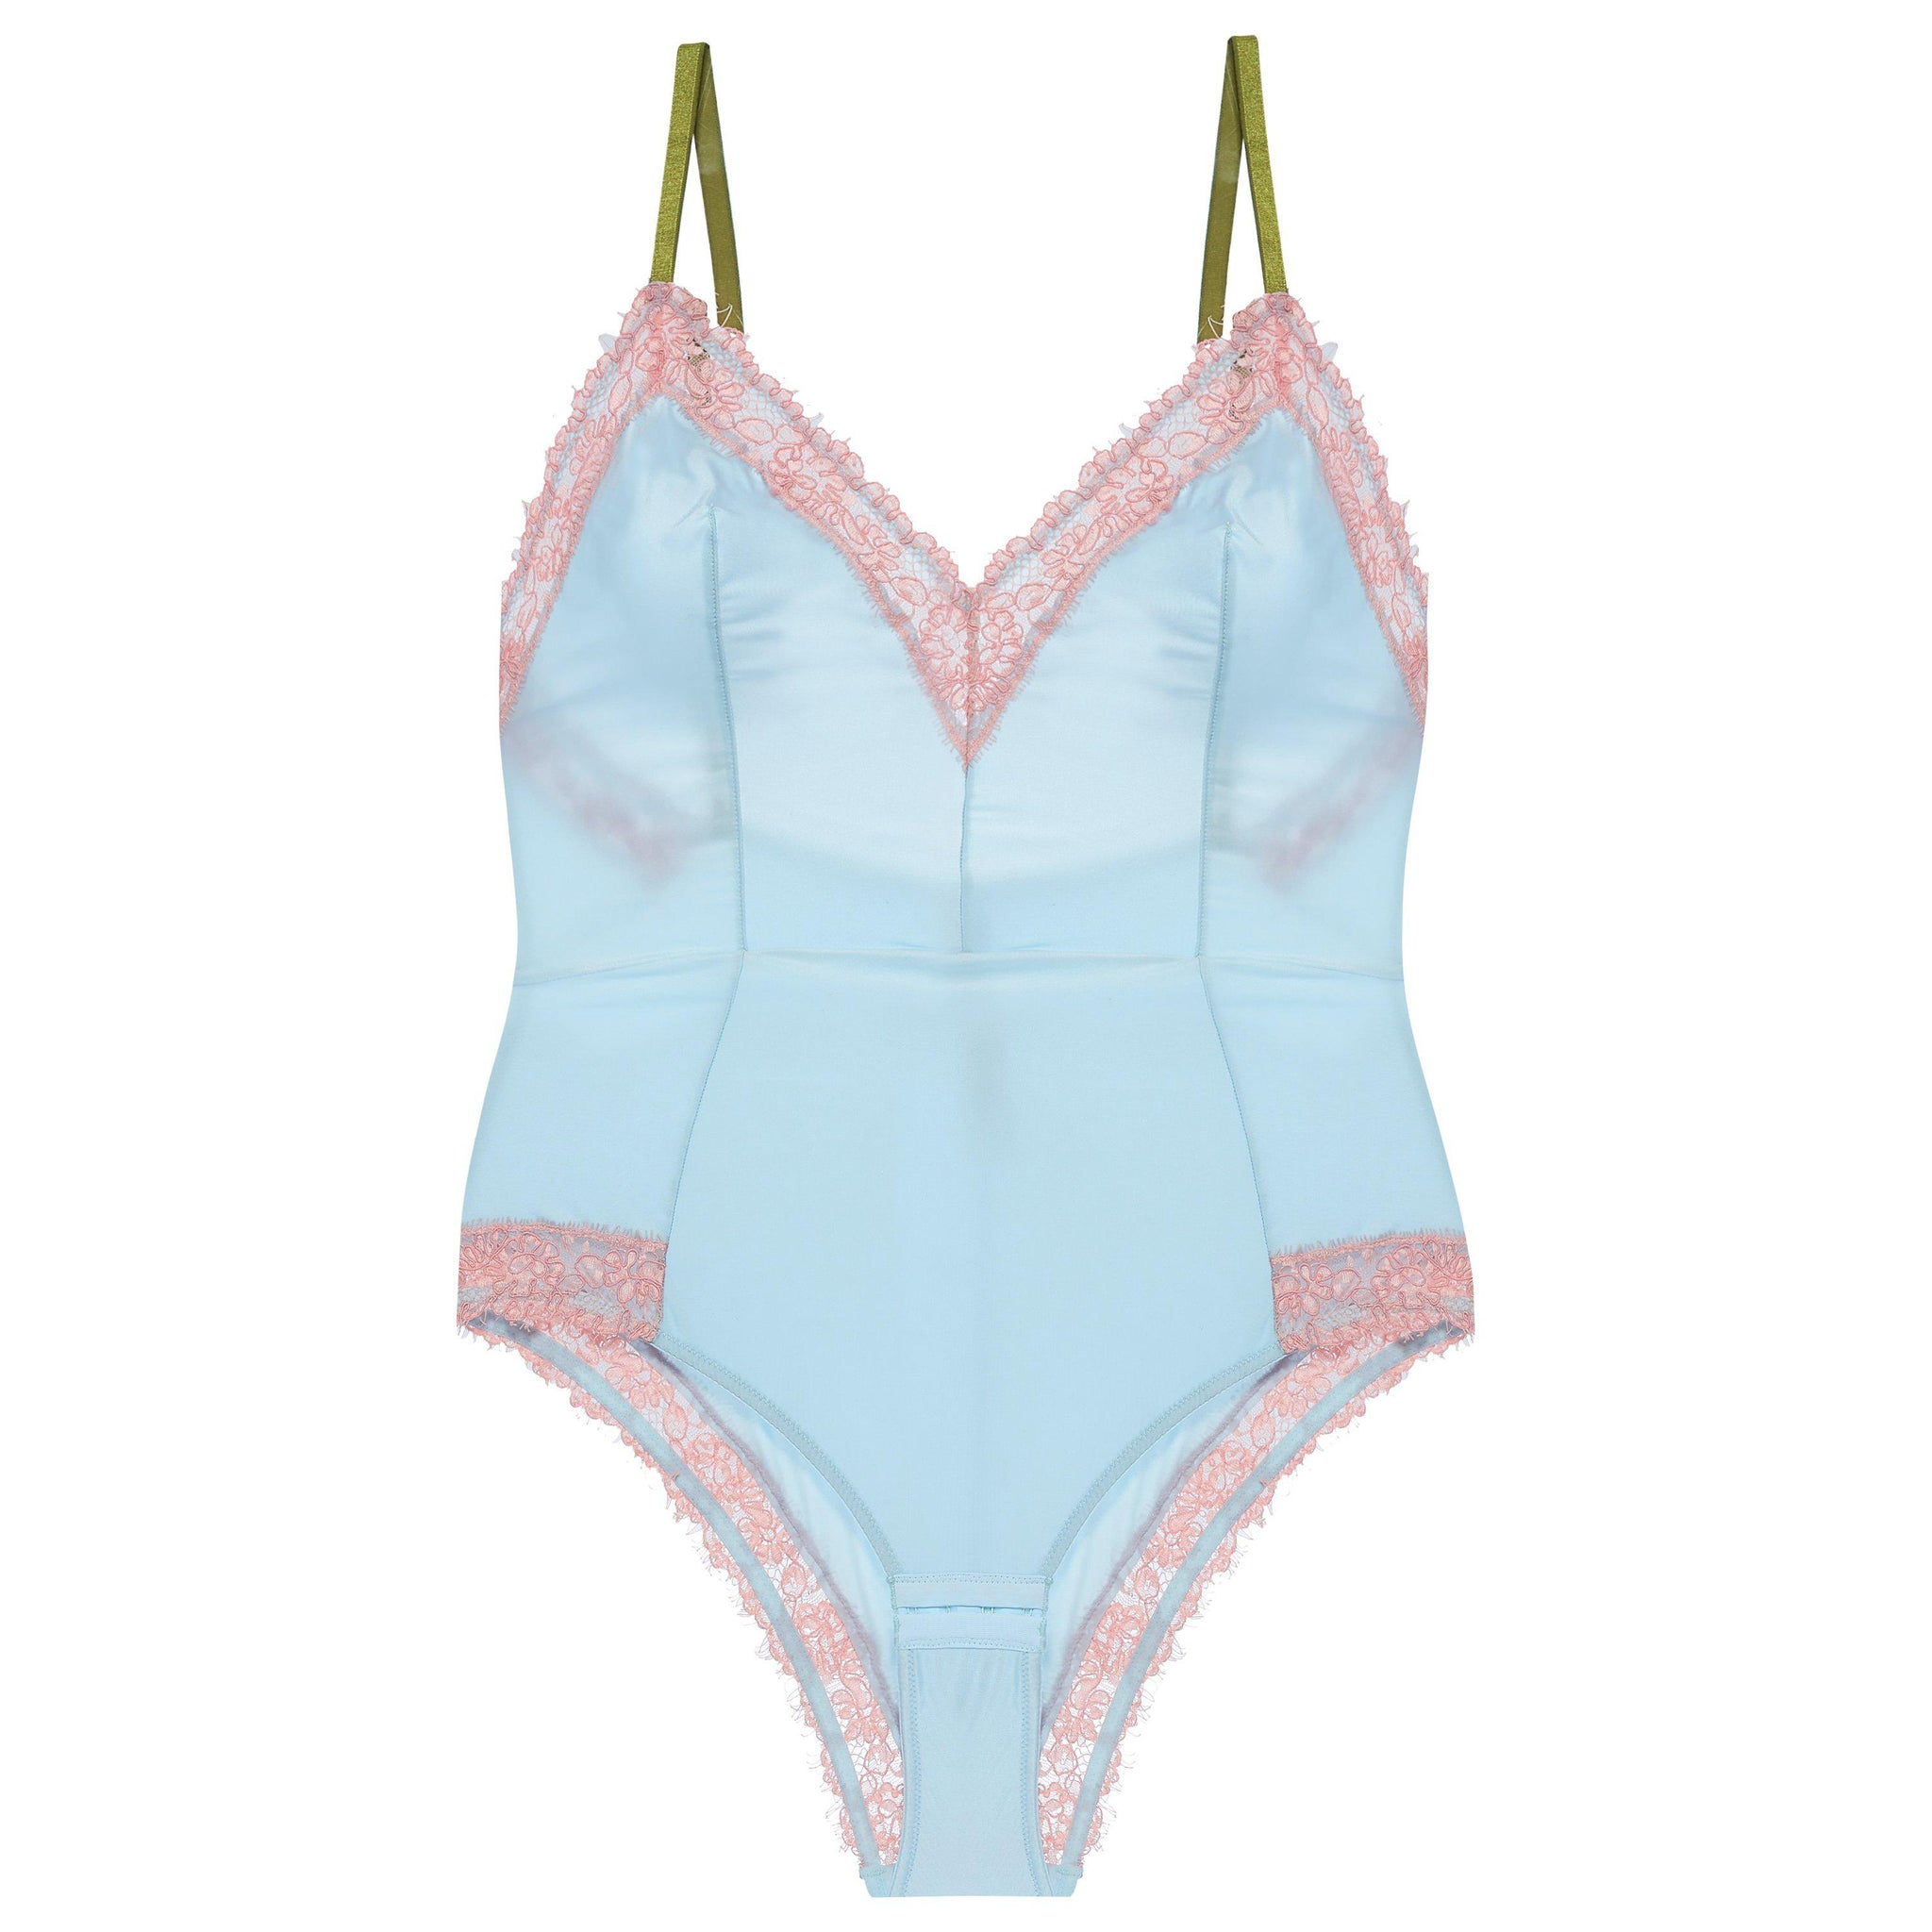 Dora Larsen AW19 | Colourful Lingerie‎ - Bonnie soft cup body bodysuit underwear